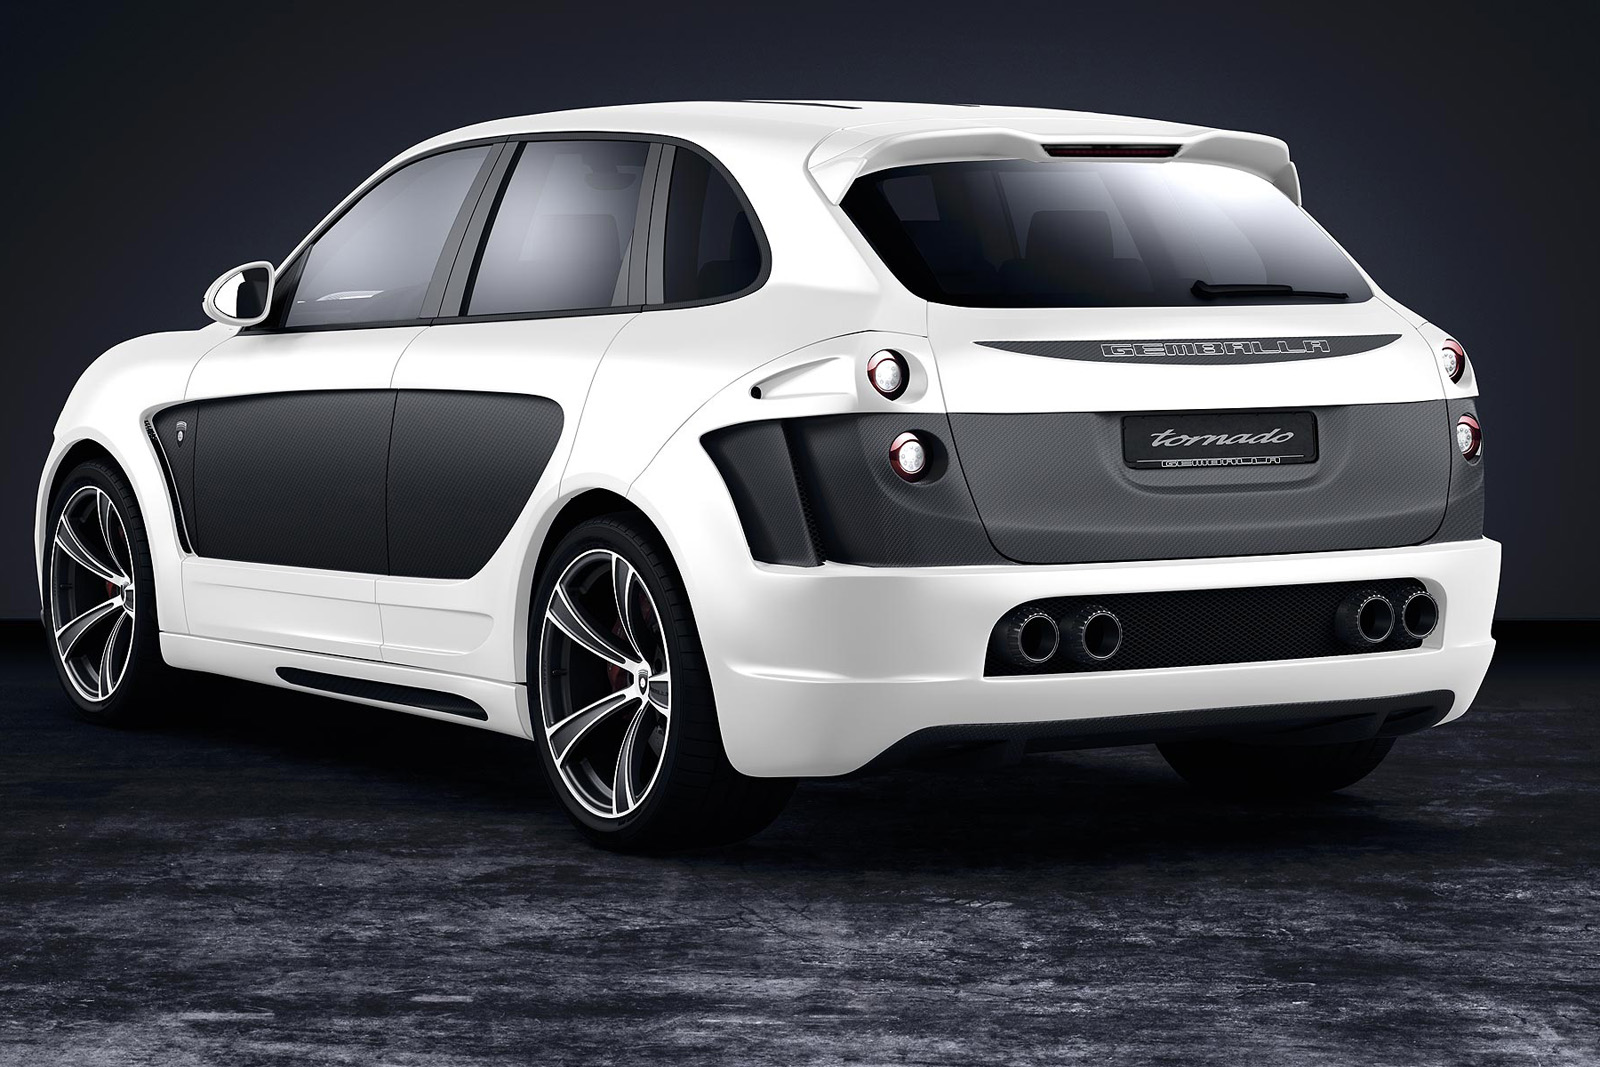 gemballa introduces tuning package for new porsche cayenne. Black Bedroom Furniture Sets. Home Design Ideas